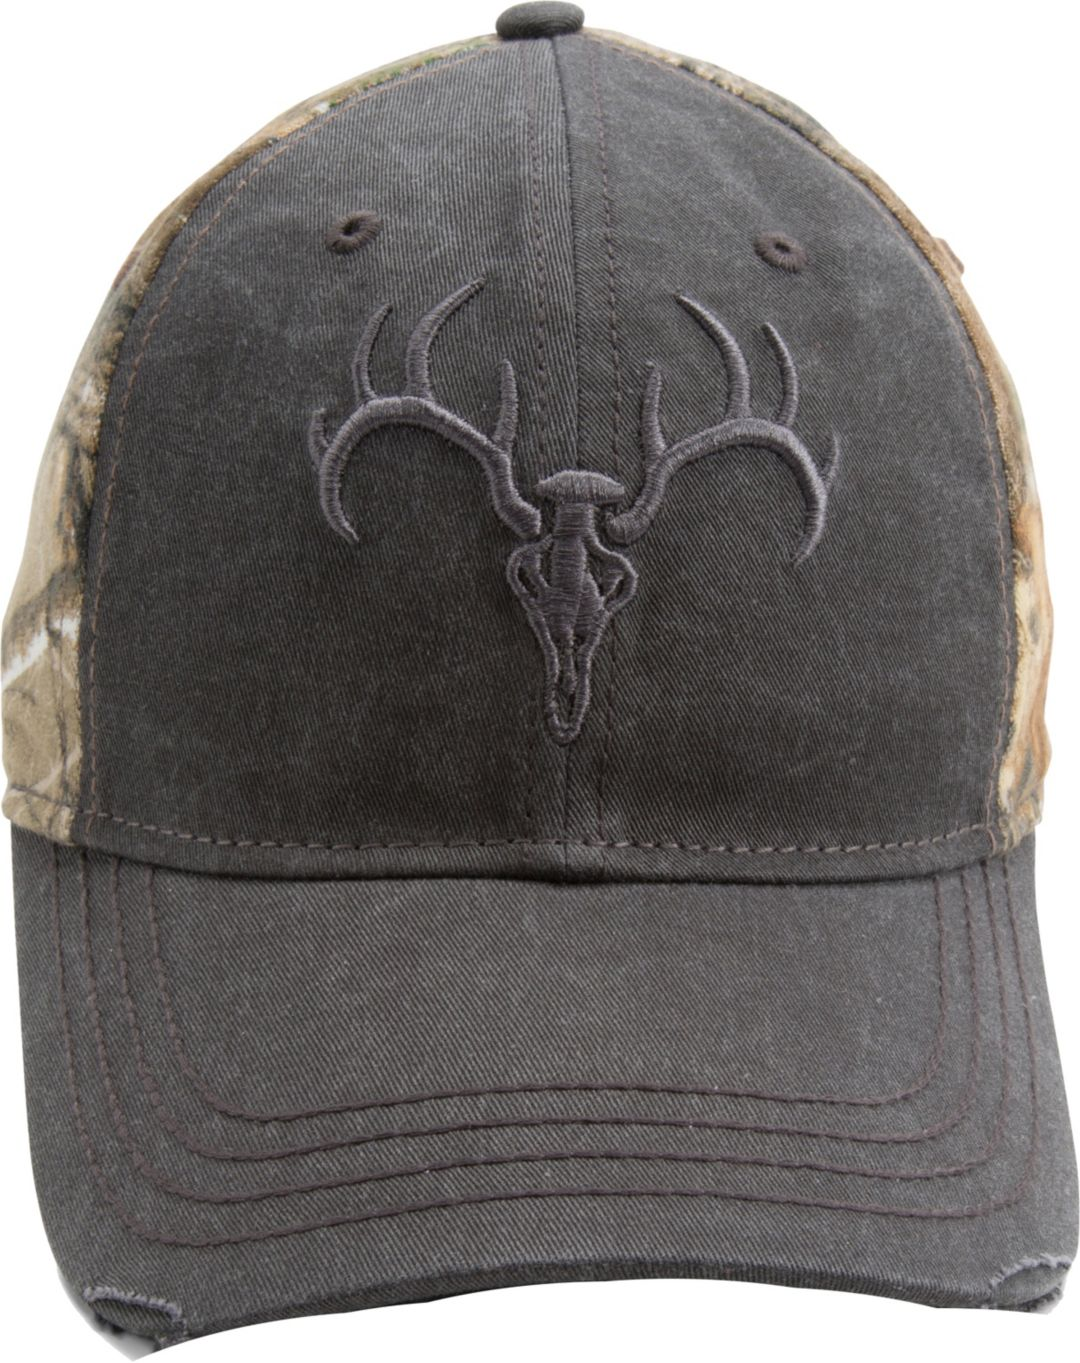 official photos d4db9 038b8 Field   Stream Men s Charcoal Camo Hat   DICK S Sporting Goods